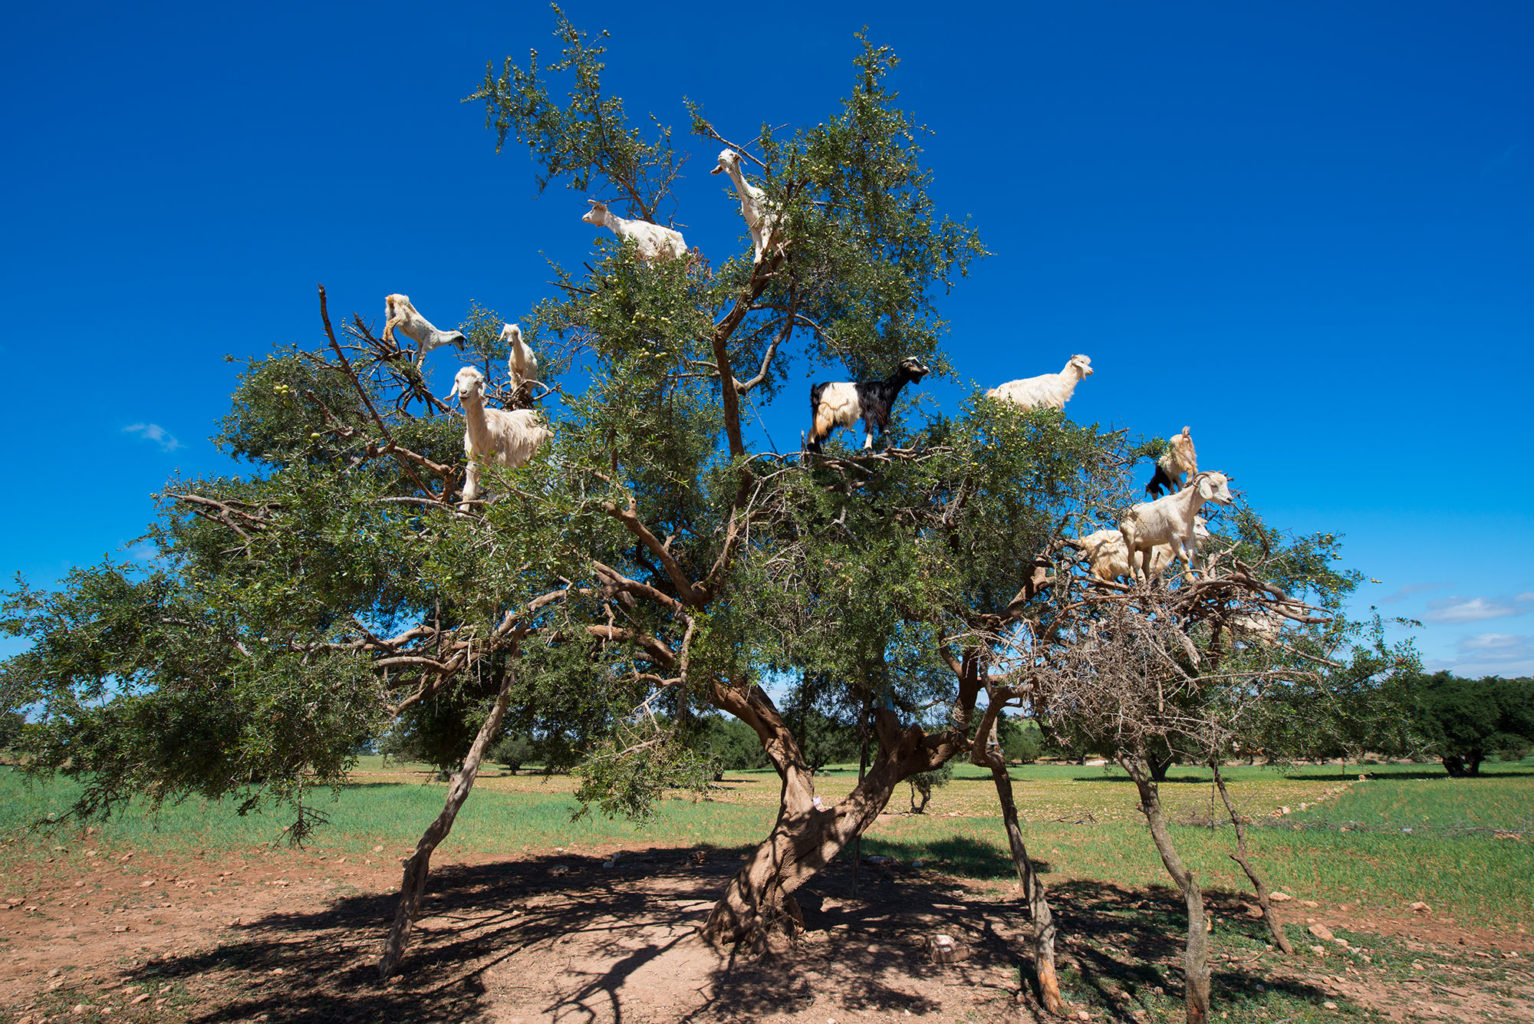 The Goat Tree on the road from ;arrakech to Essaouira Morocco